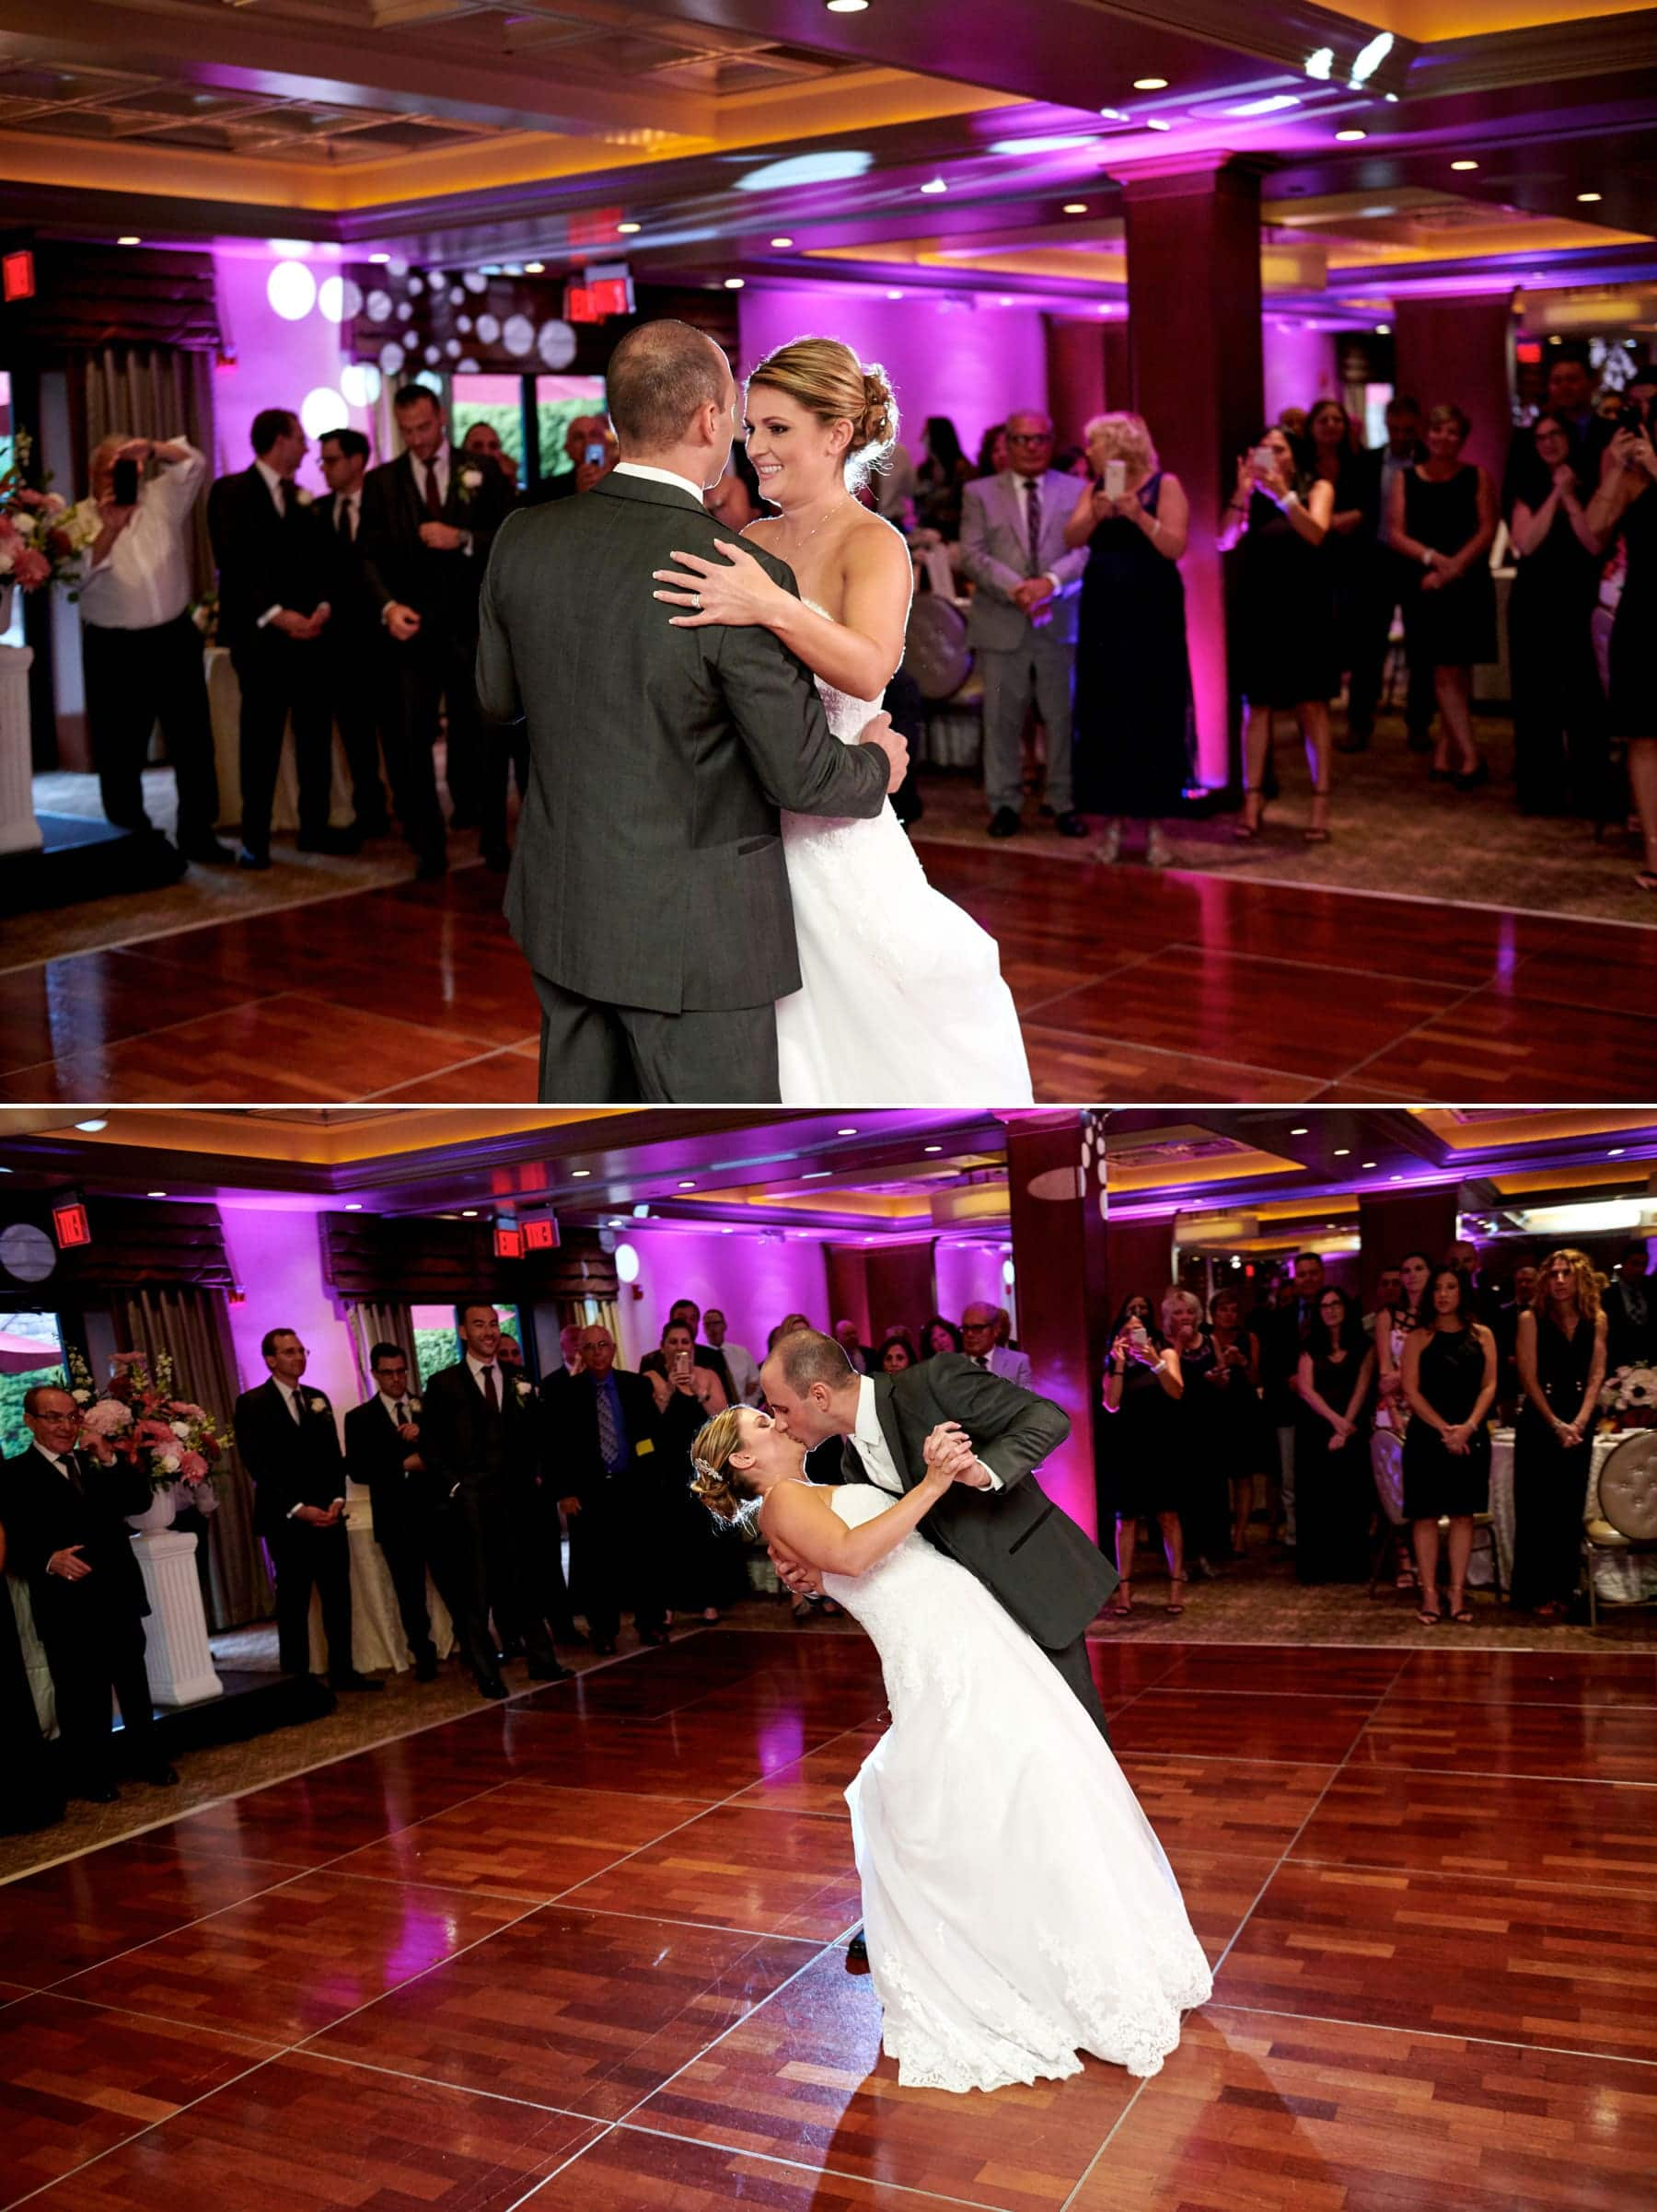 wedding first dance photos at The Imperia